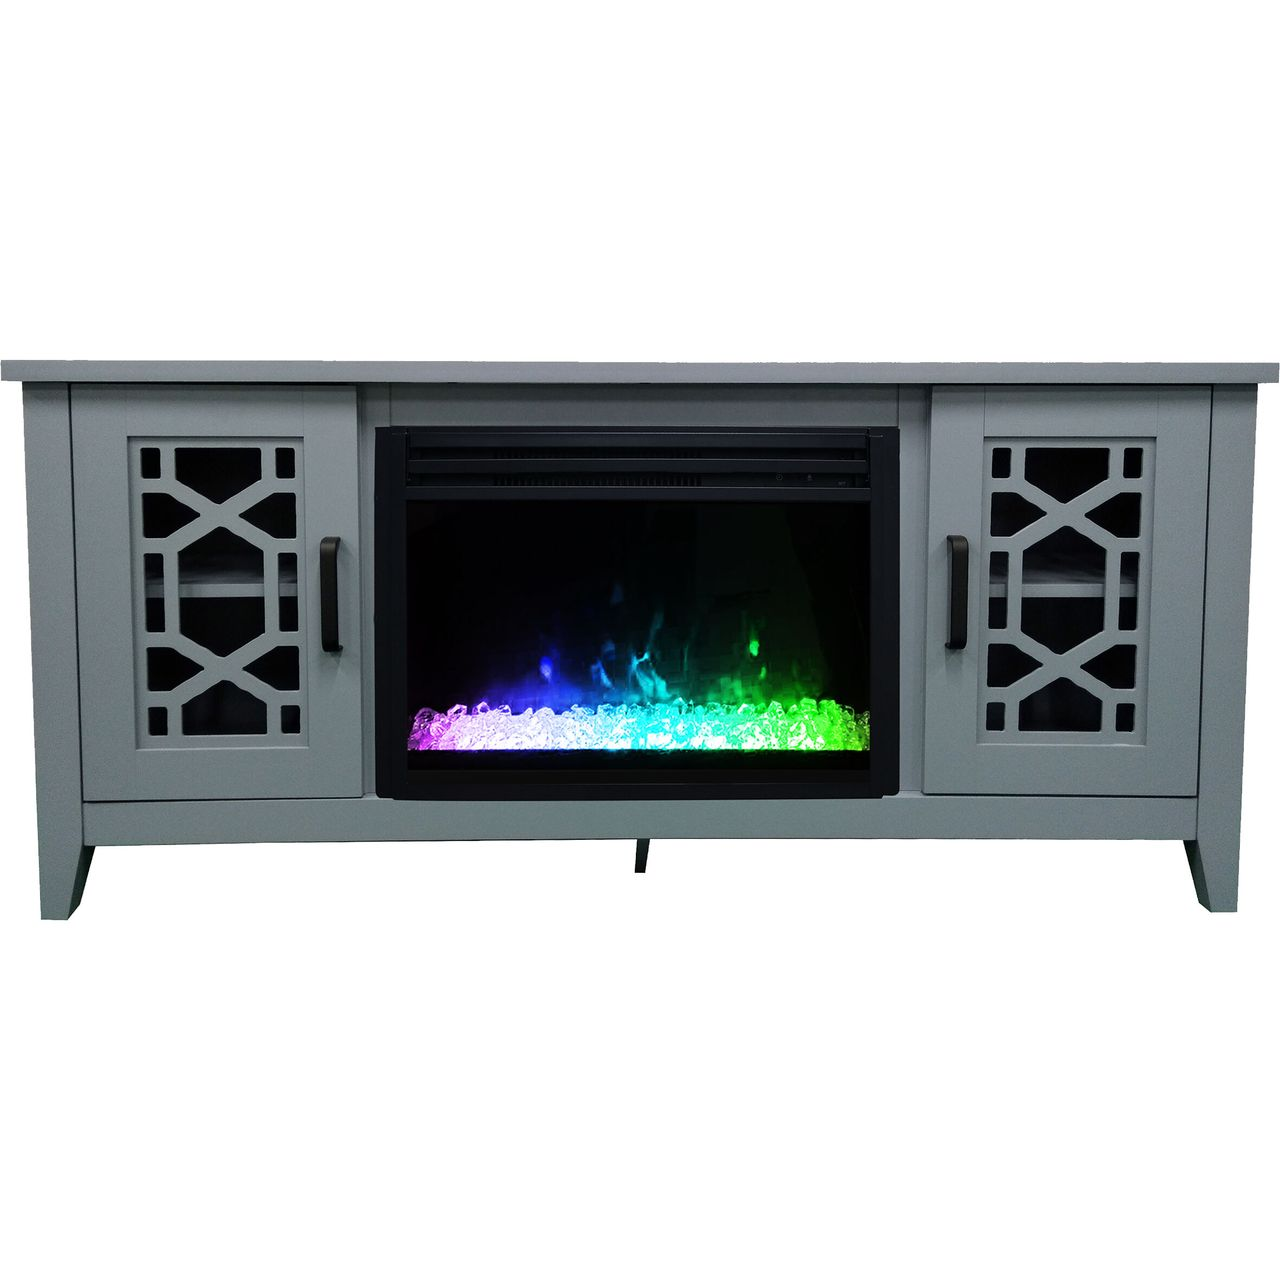 "Cambridge 56"" Stardust Electric Fireplace with Crystals - Slate Blue"